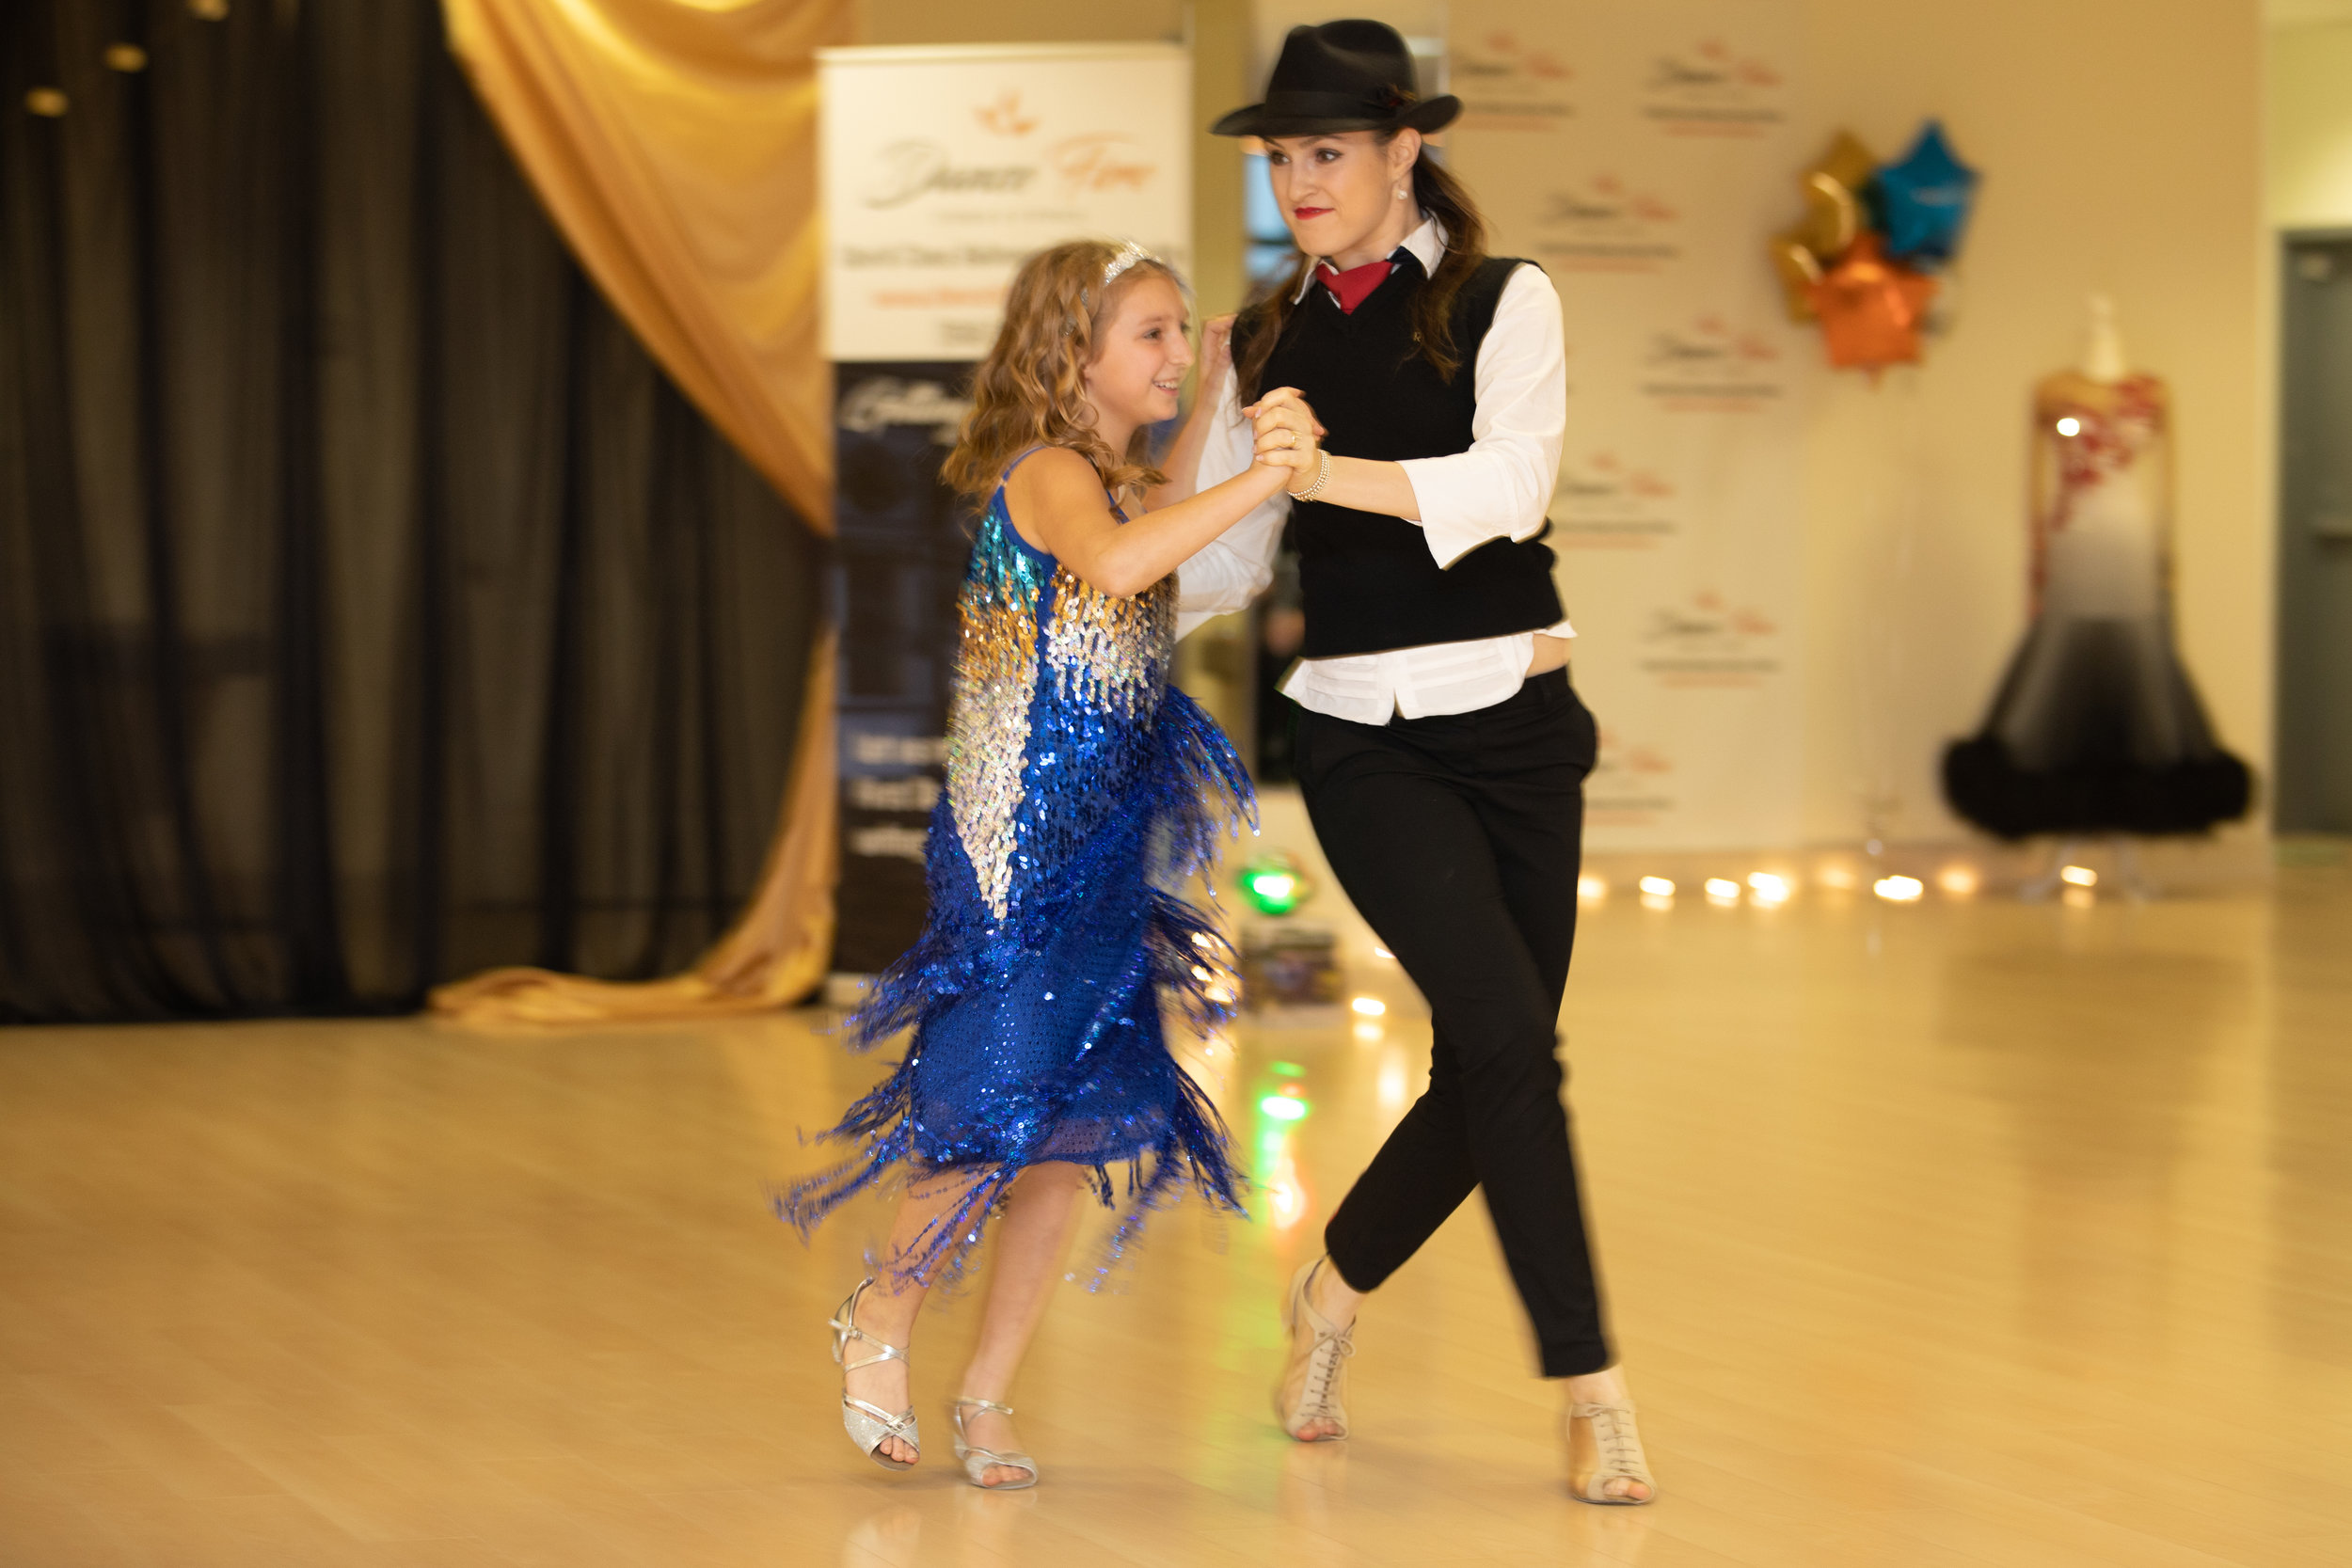 DanceFireShowcaseSpectacular2018-13.jpg